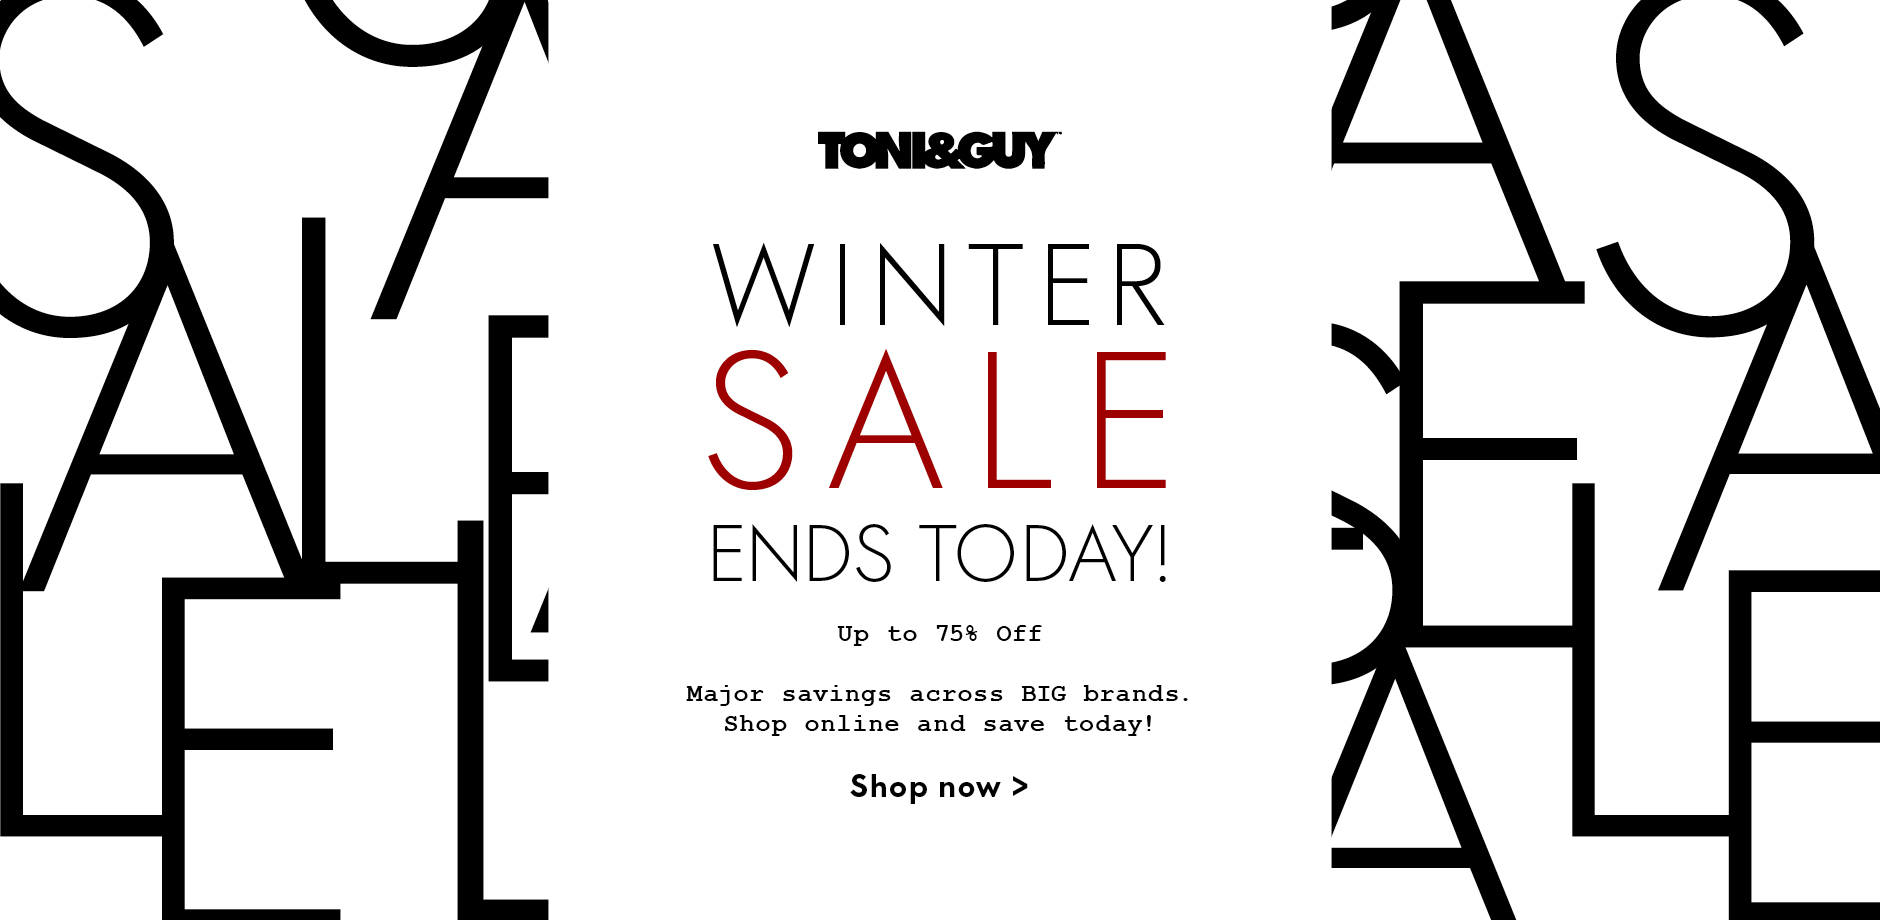 Winter Sale 2018 ends today